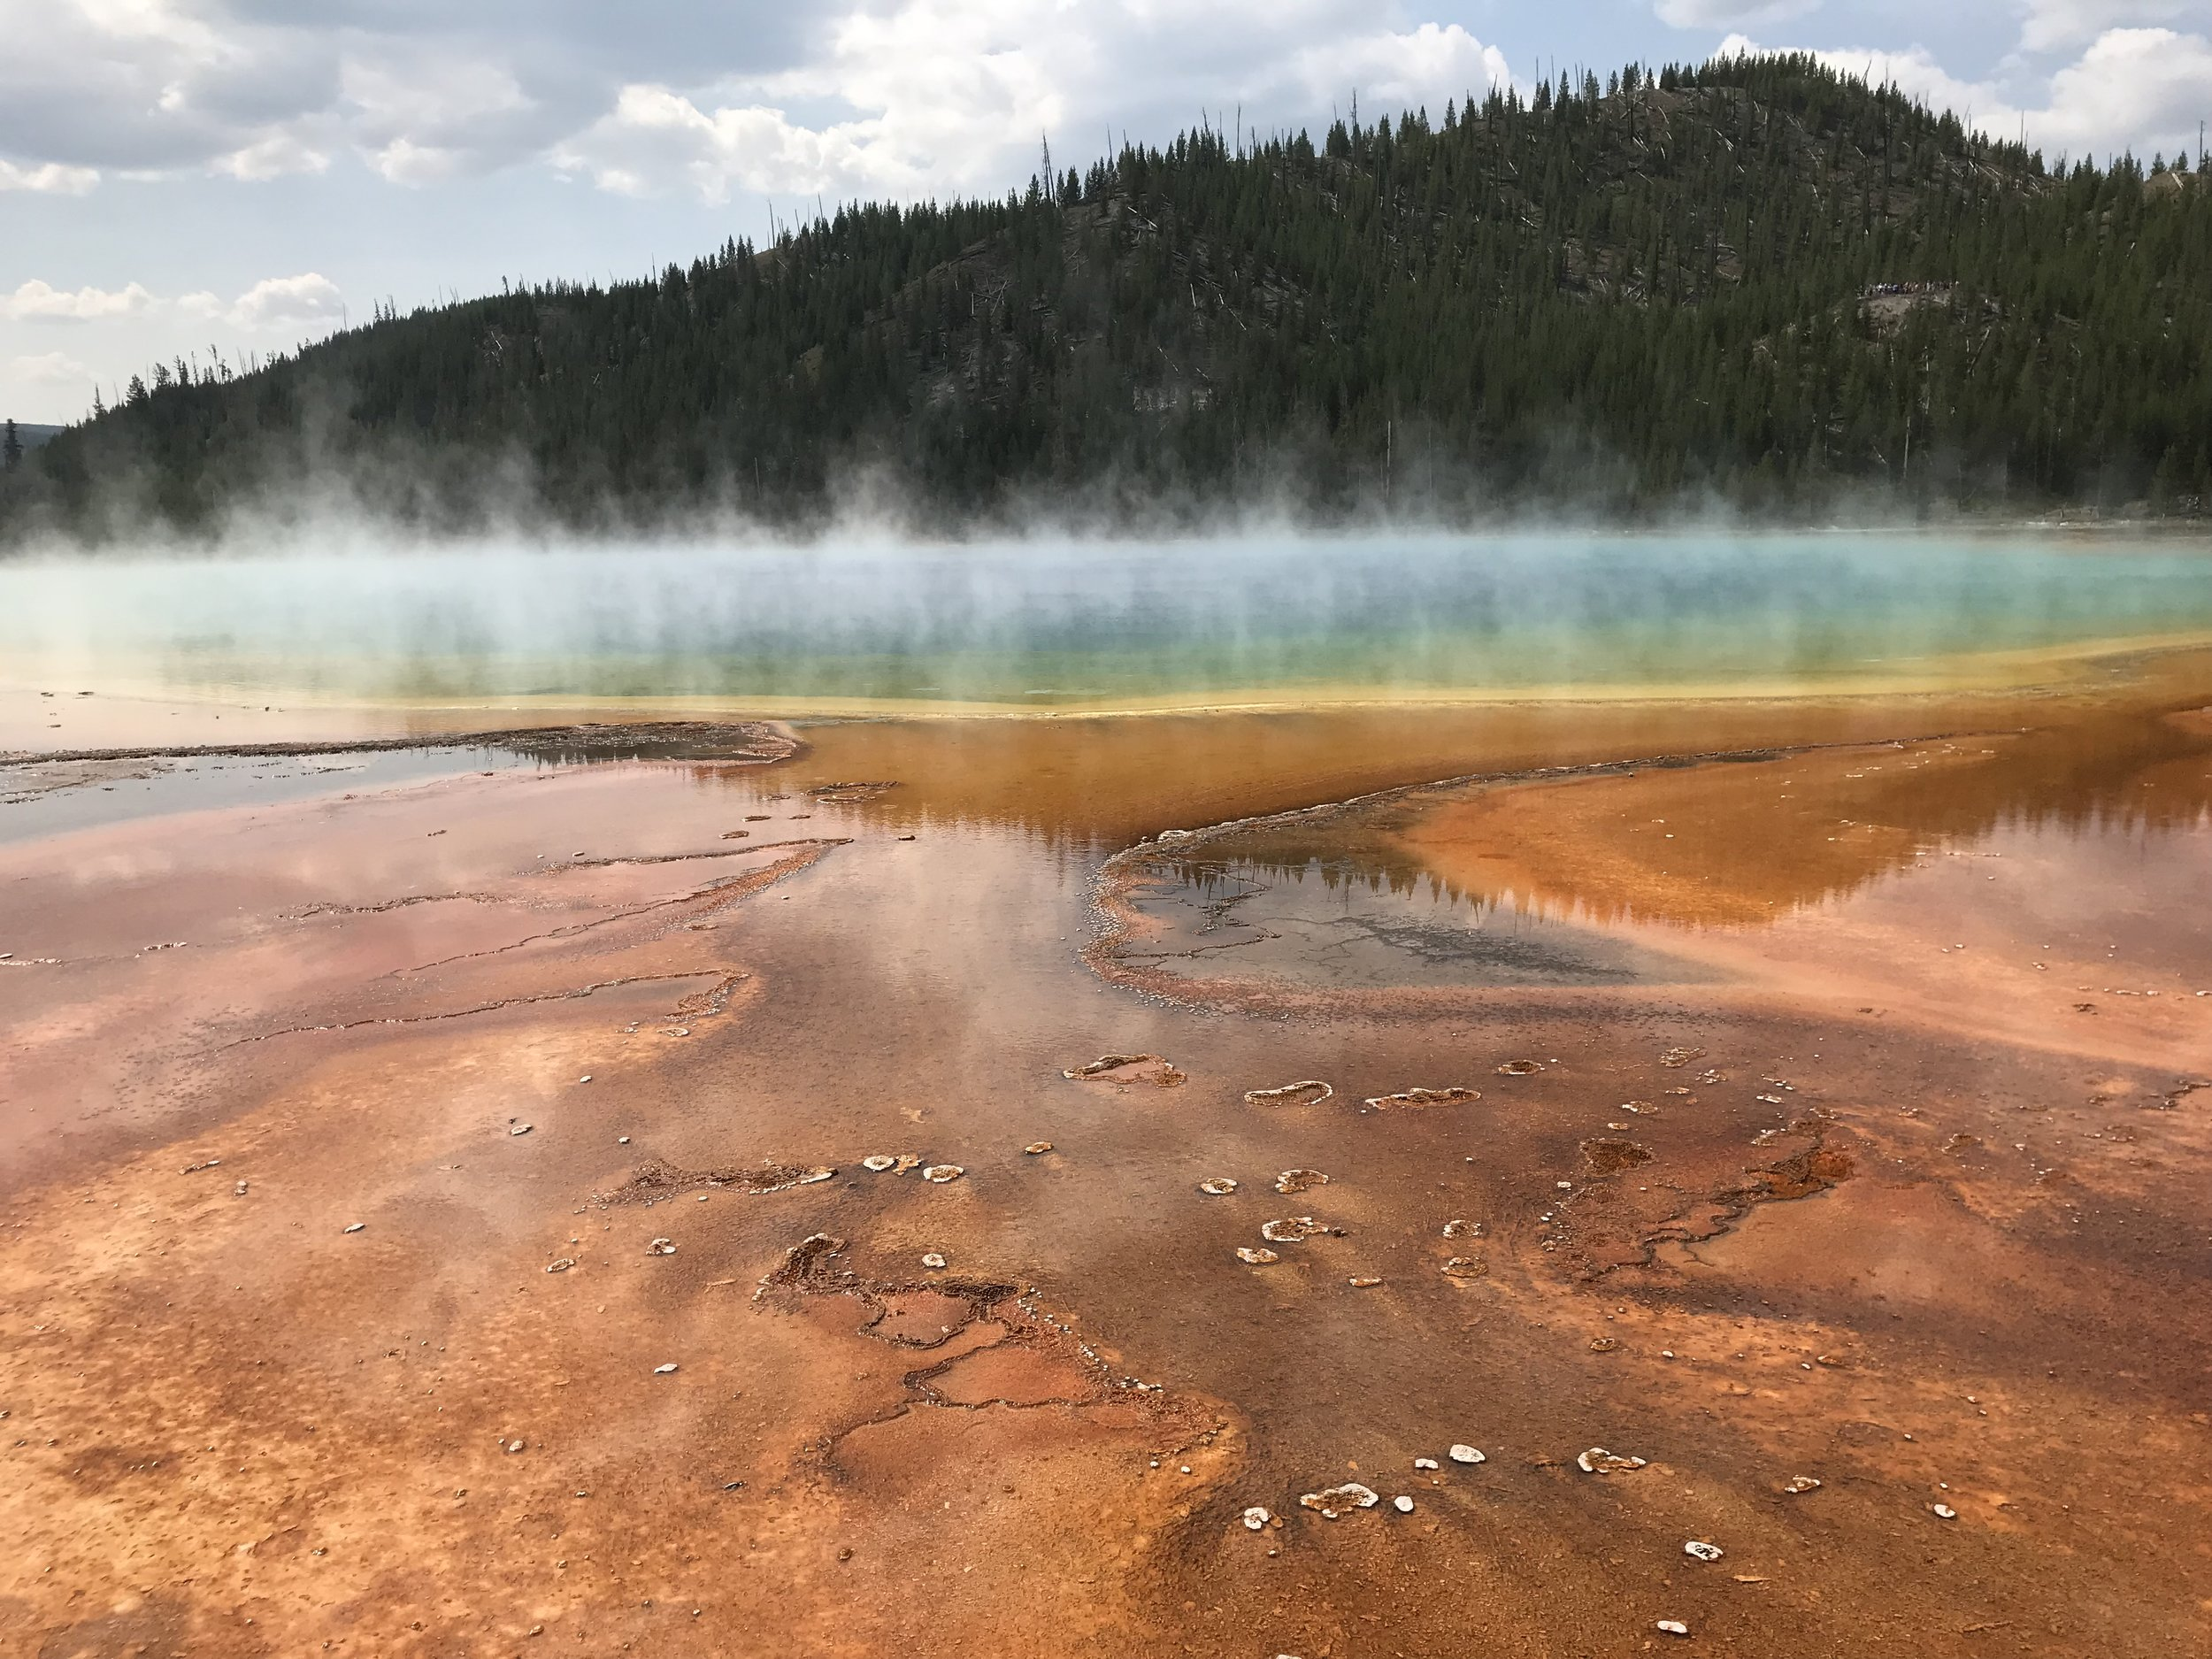 Grand Prismatic Spring- the largest and most vibrantly colorful of all the hot springs we experienced in Yellowstone. Just to give a little scale, the diameter of this spring is about 300 feet.